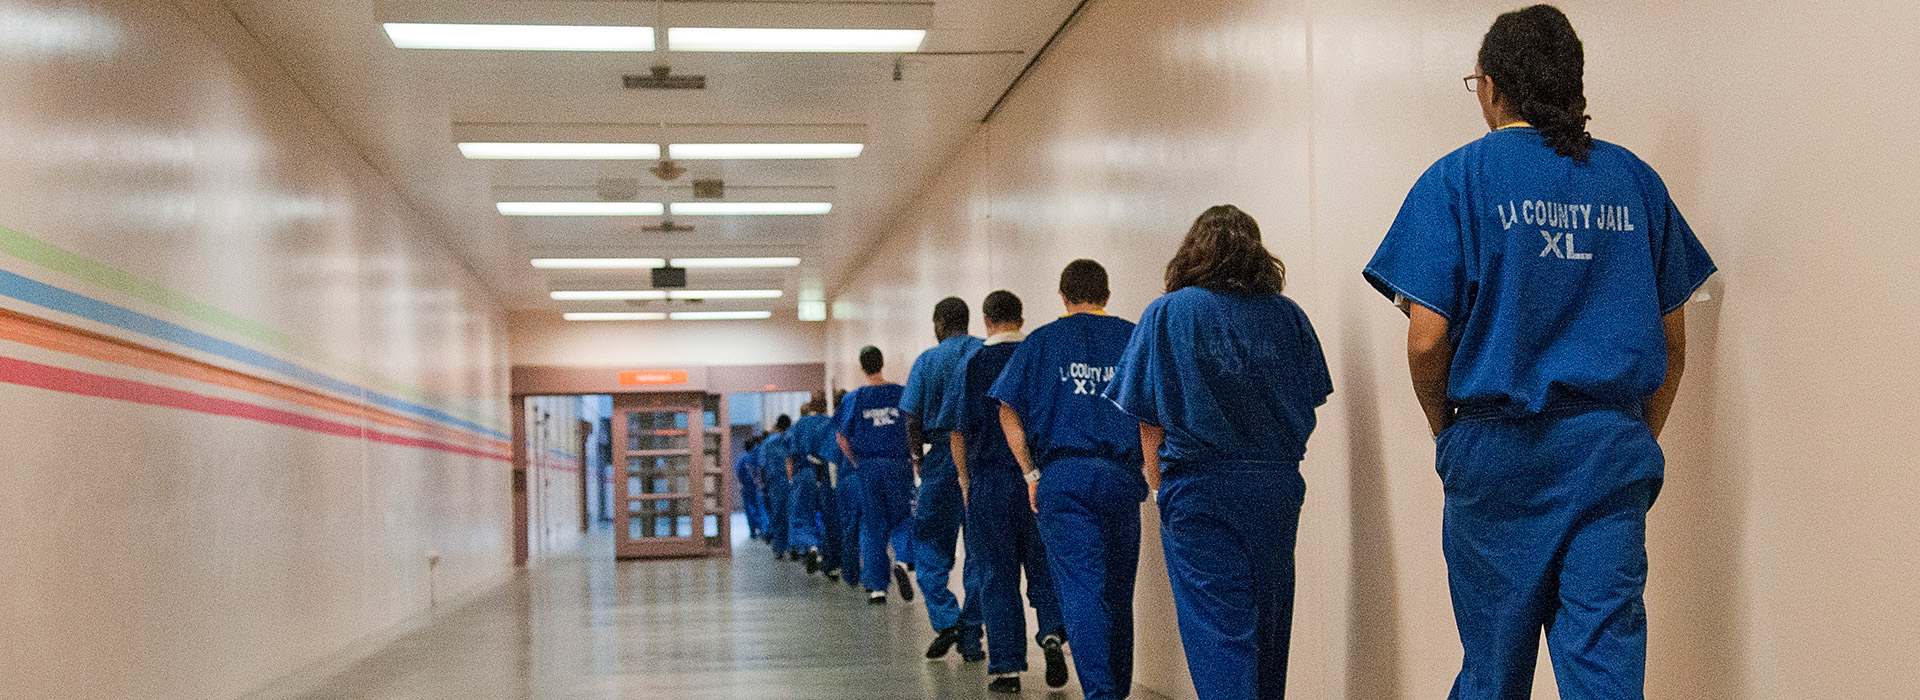 Inmate Information: Locate an Inmate, Schedule a Visit, Buy a Care Package